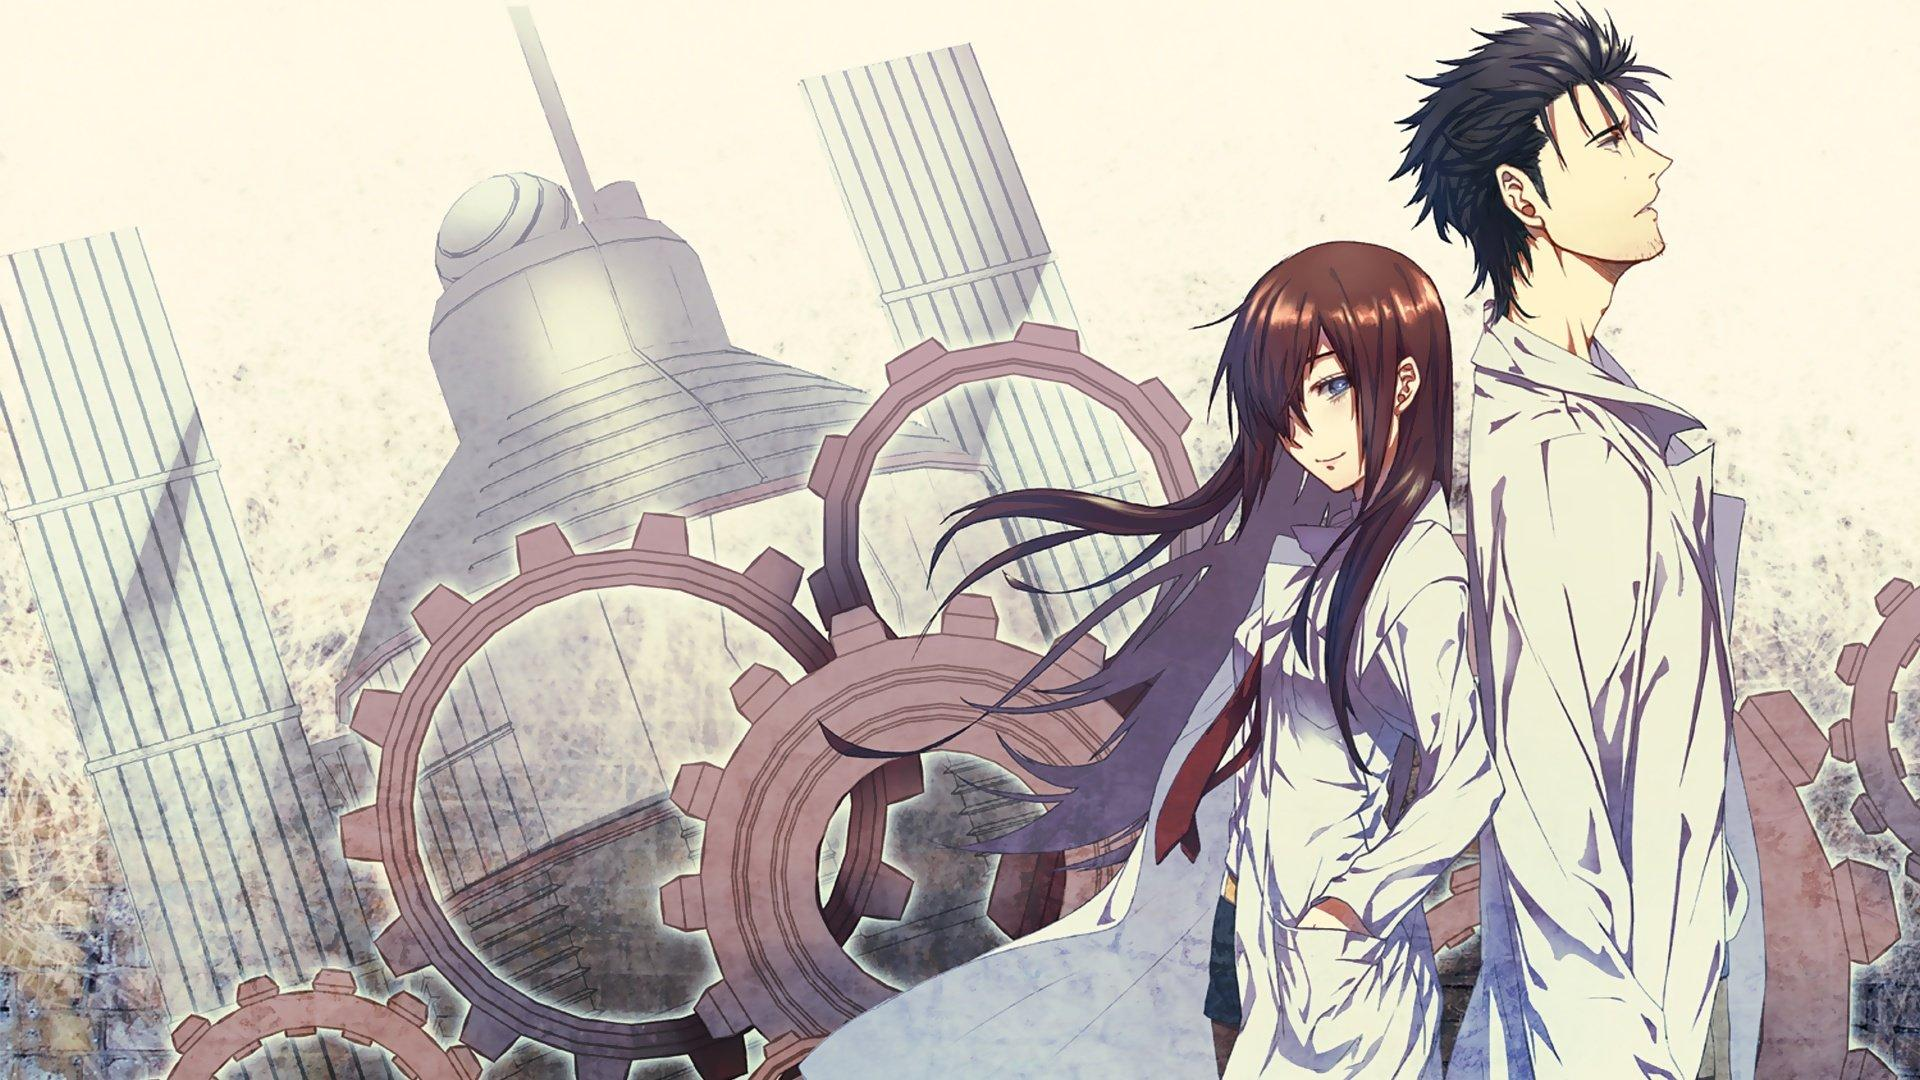 Kurisu Makise wallpapers 1920x1080 Full HD